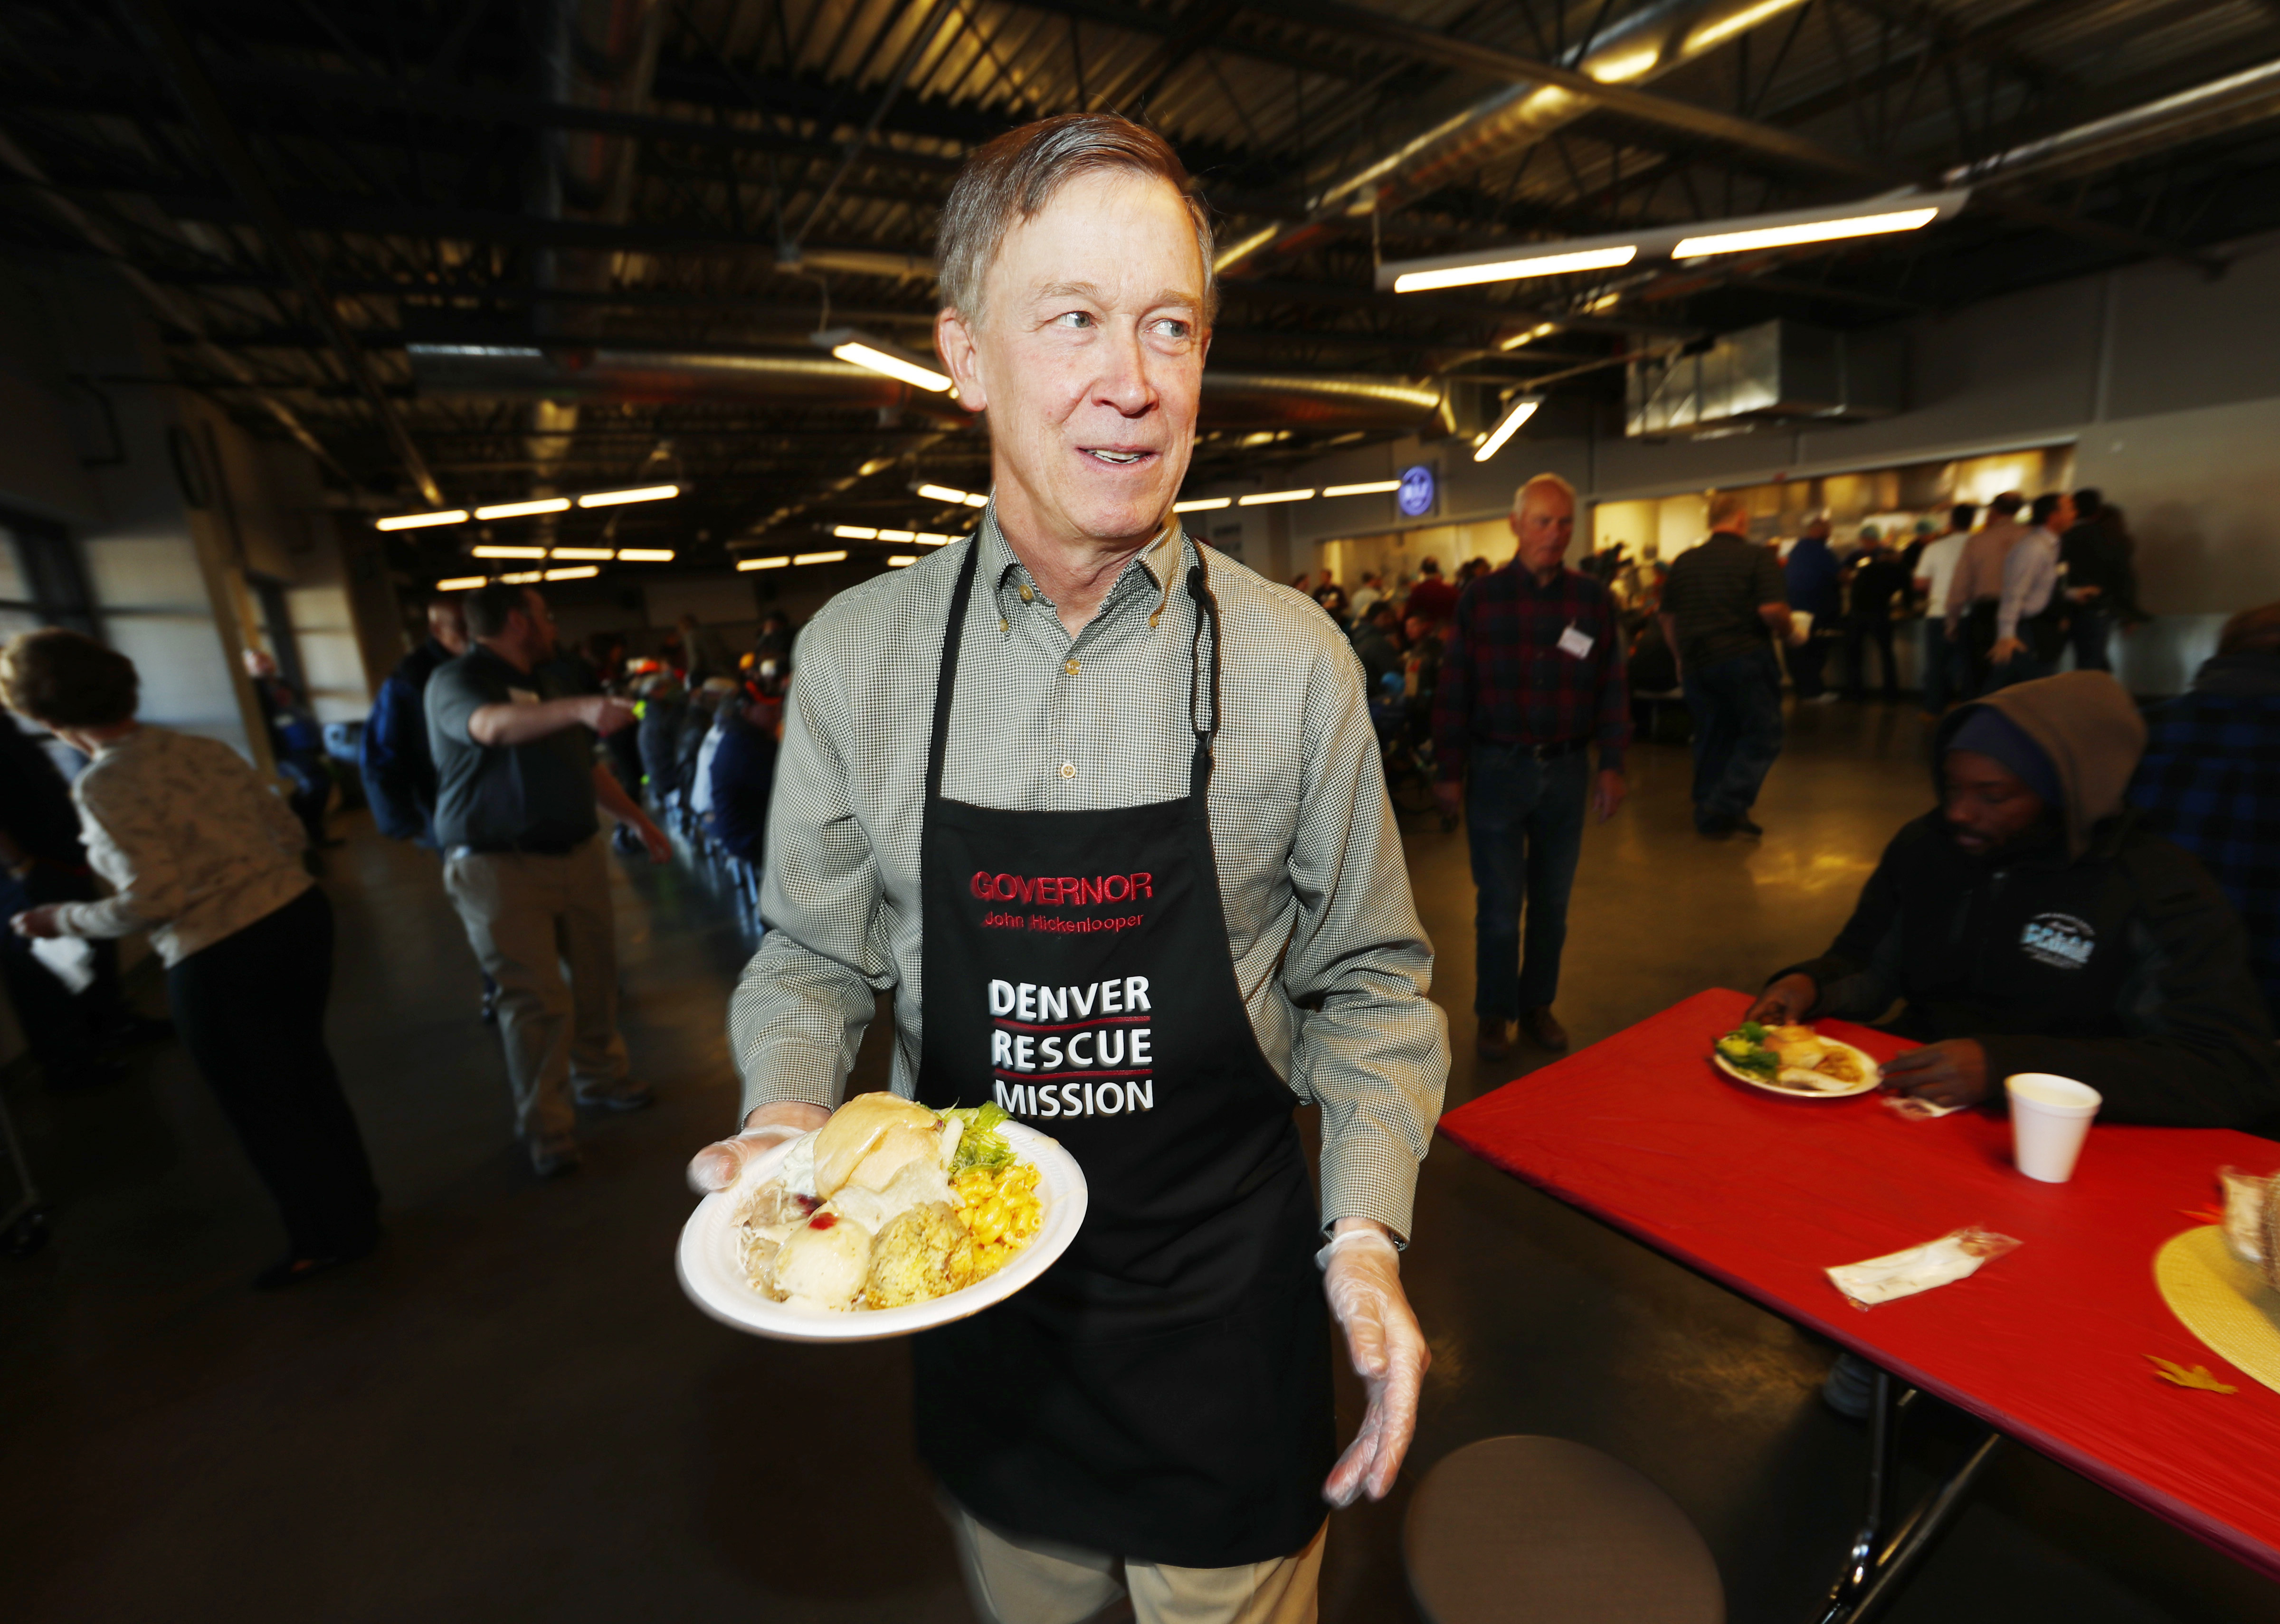 Clean Air Colorado In this Wednesday, Nov. 23, 2016, file photograph, Colorado Gov. John Hickenlooper carries a plate of food as he helps to serve the great Thanksgiving banquet to more than 500 homeless and poor men, women and children at the rescue mission in downtown Denver. Citing backlash from Republicans, Colorado's Democratic governor, Hickenlooper, said Tuesday, Jan. 10, 2017, he has abandoned the idea of issuing an executive order to seek a one-third cut in greenhouse gas emissions from power plants.